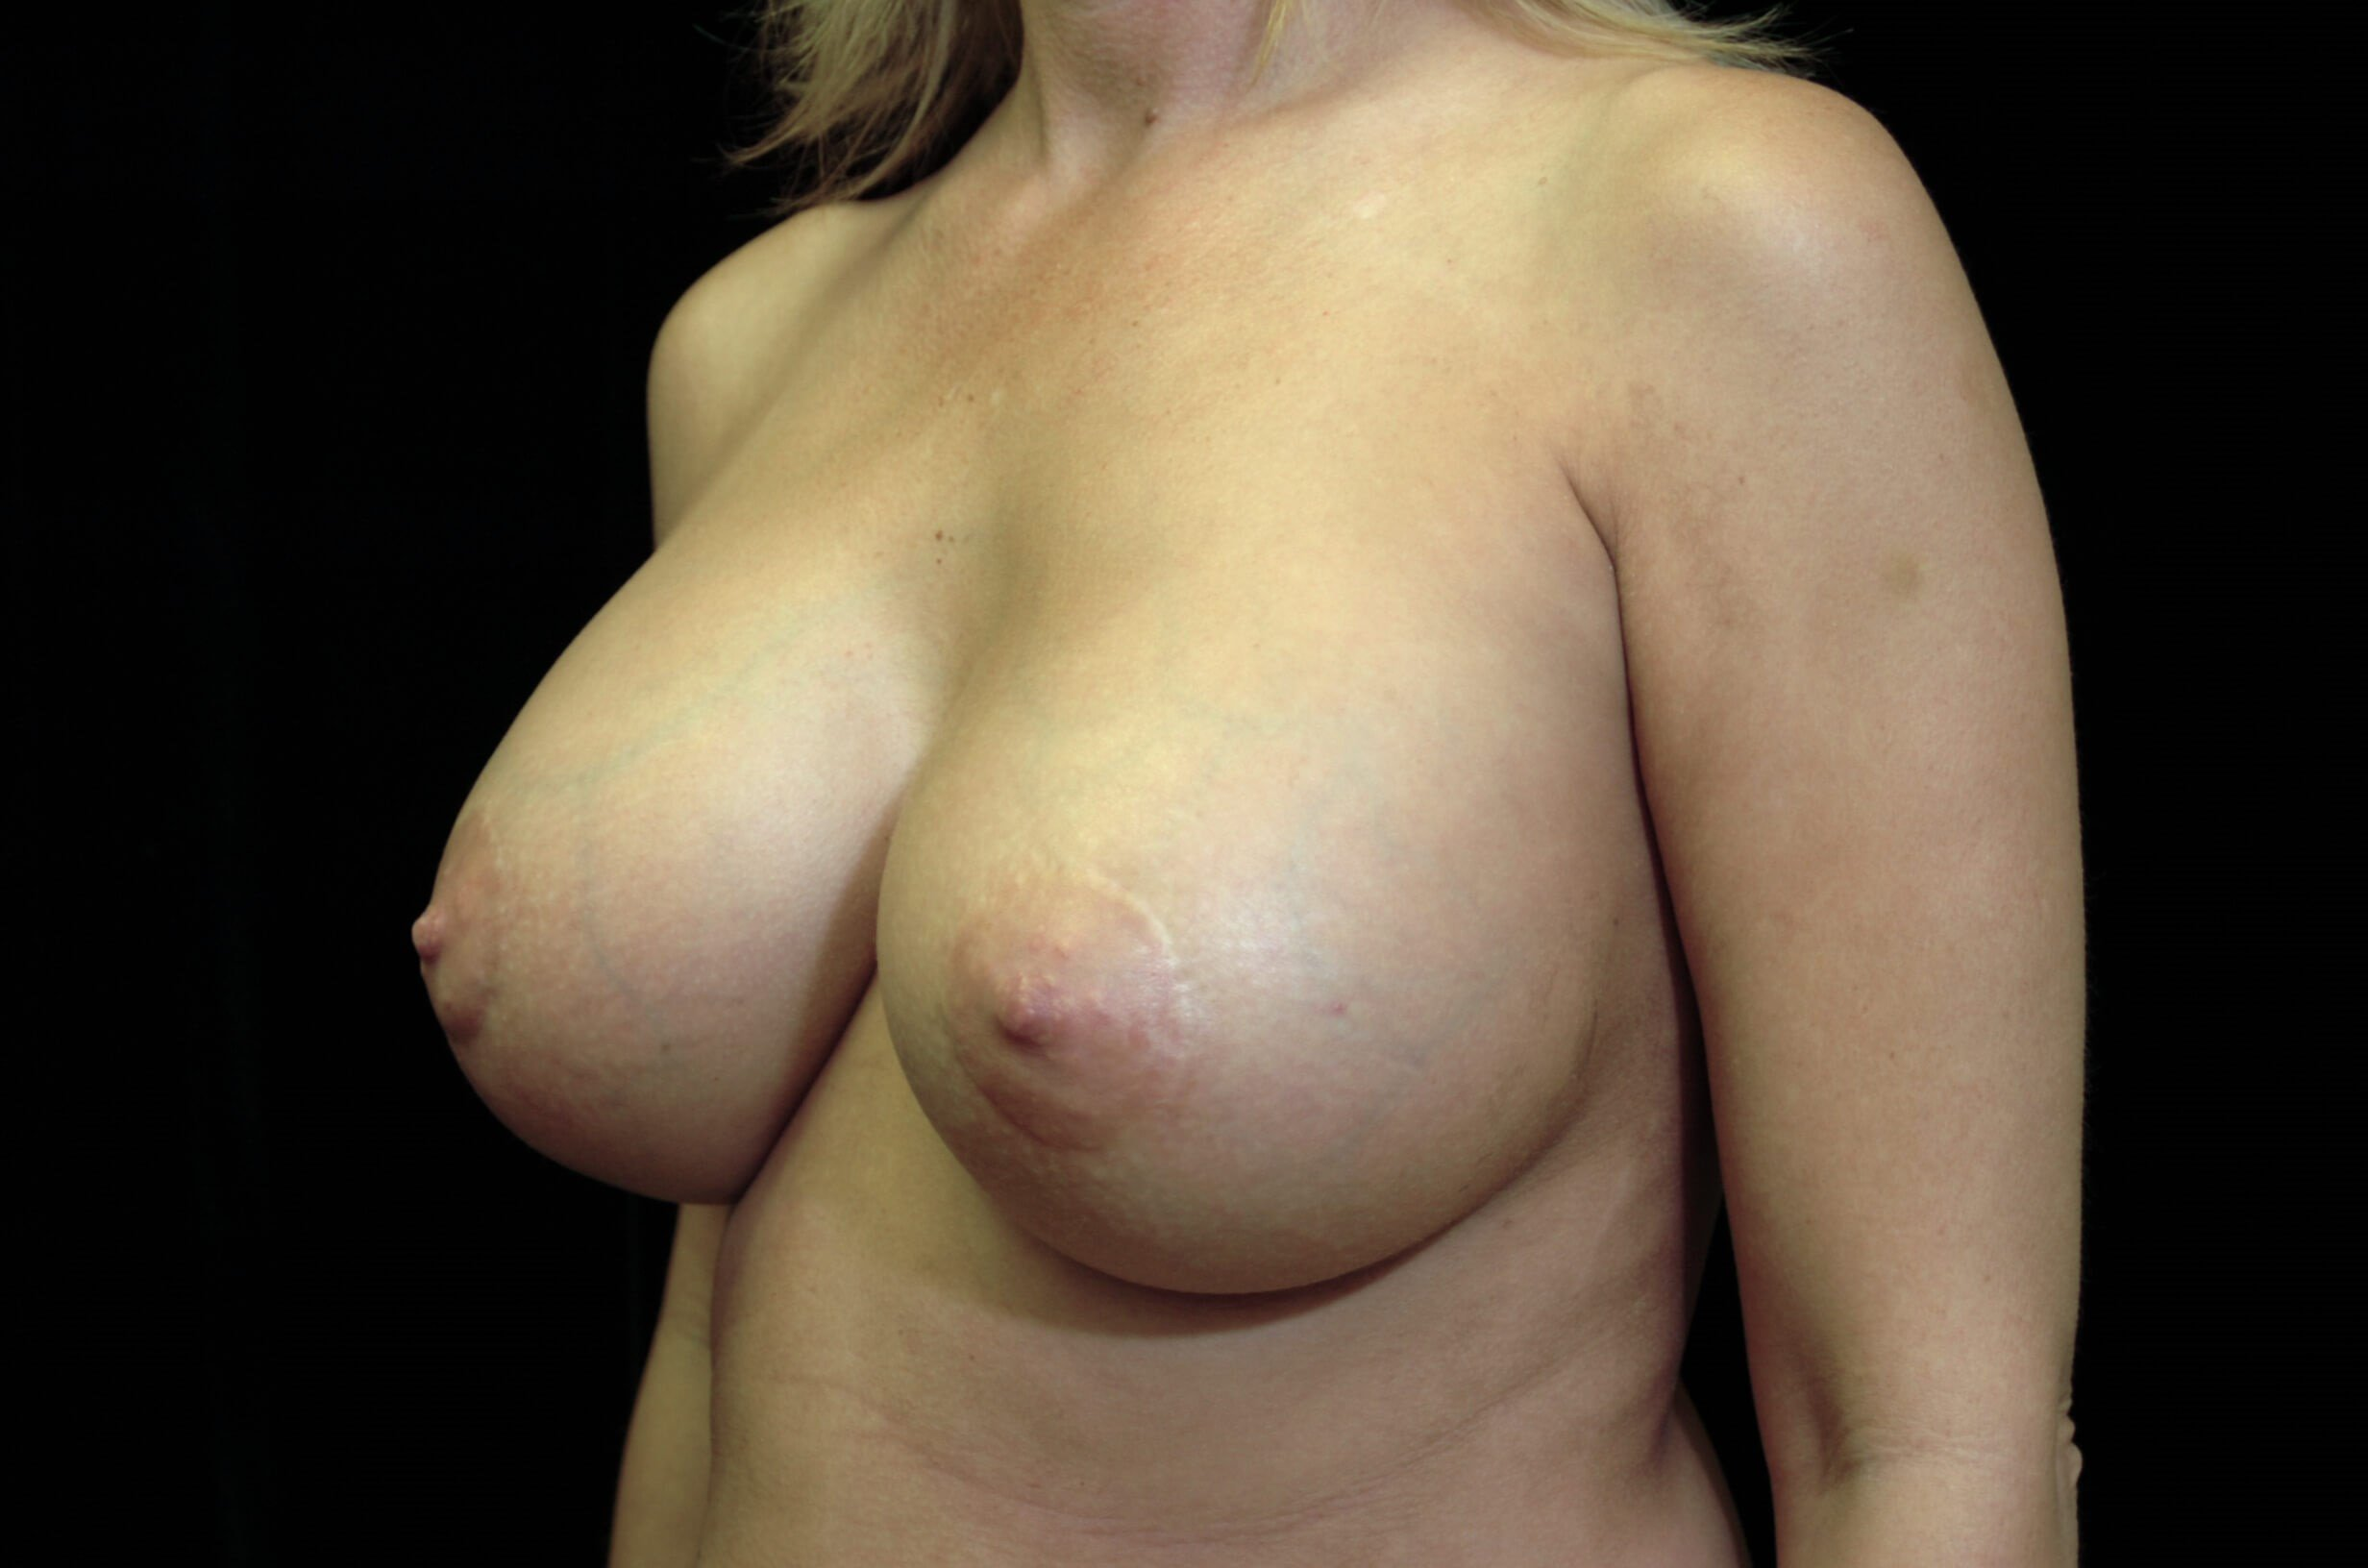 Breast Augmentation Revision After Breast Implant Revision